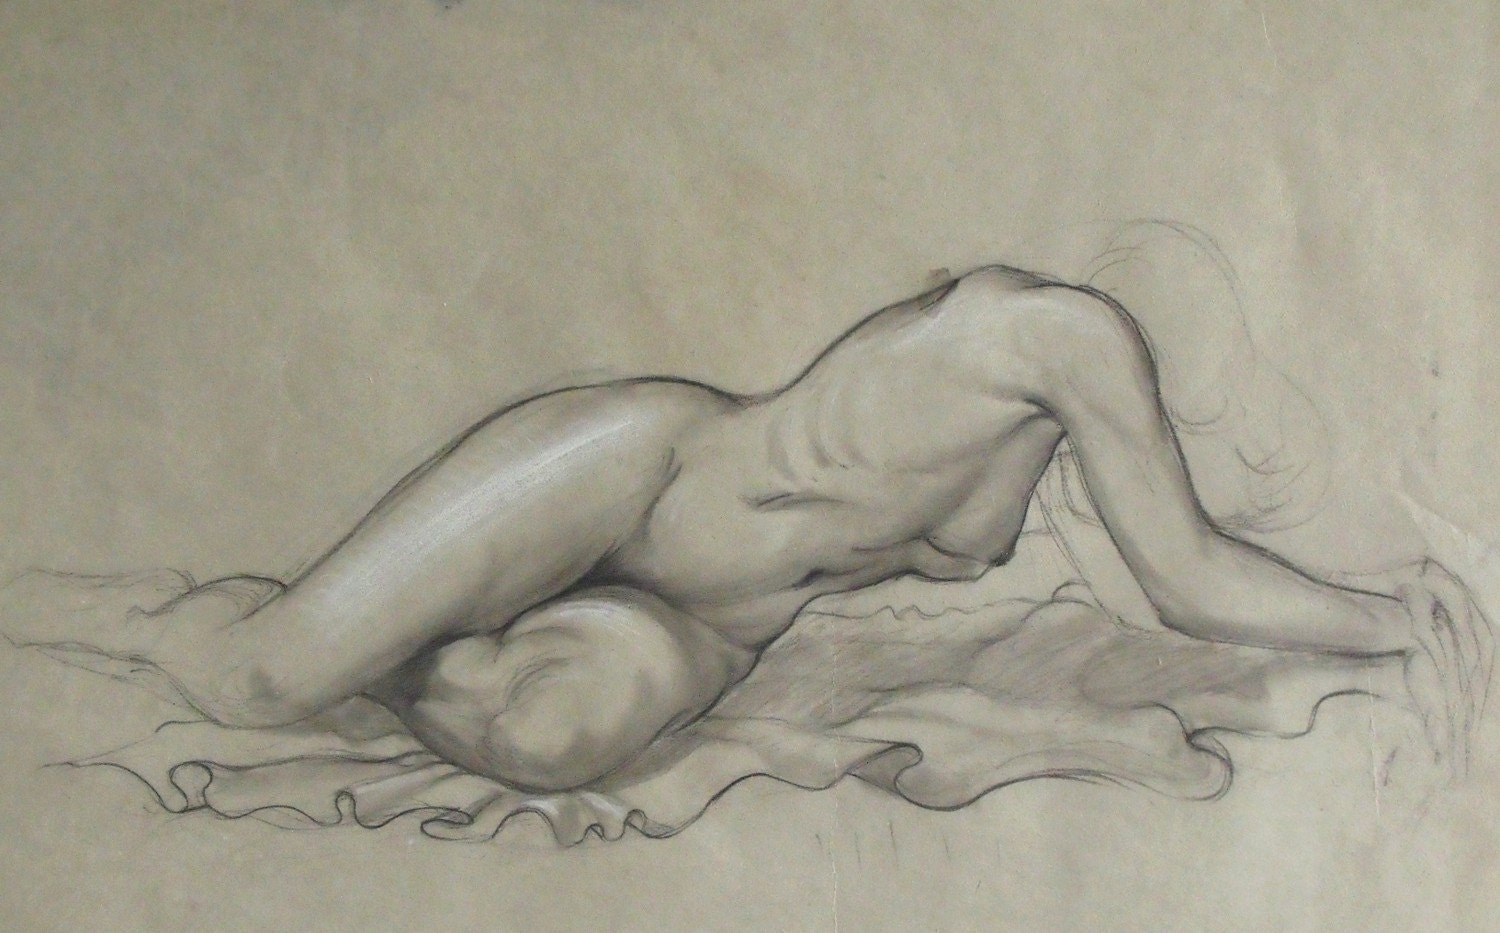 Nude pencils sex drawings adult download